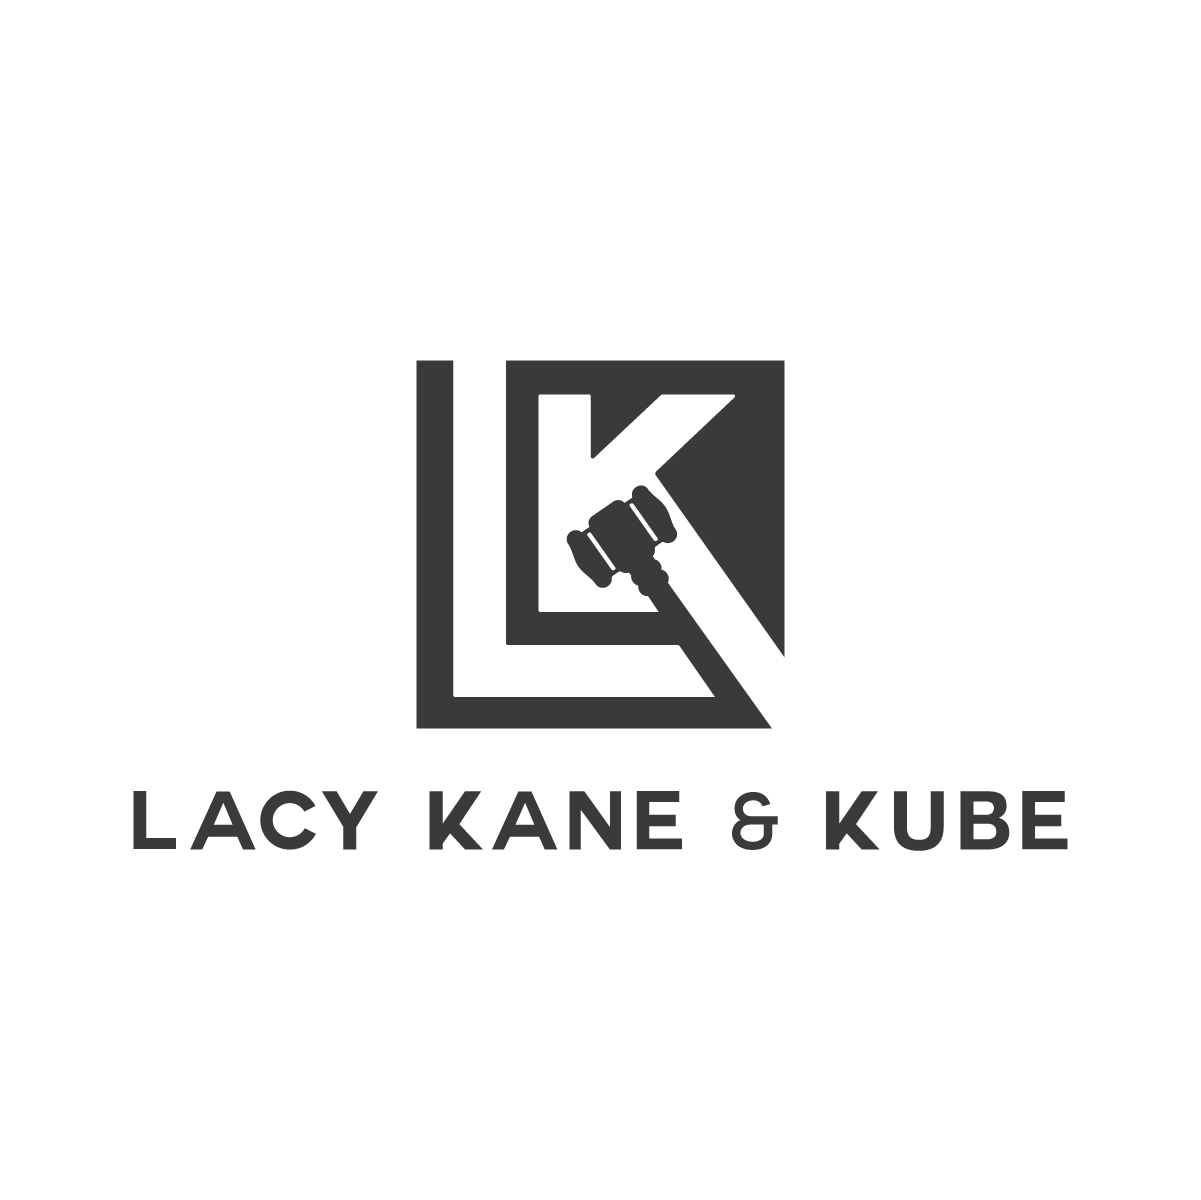 Lacy Kane & Kube P.S.   has been a trusted law firm and community member for over 25 years in North Central Washington. Lacy Kane & Kube provide professional legal advice and representation to all of their clients. They have a respected reputation, and the resources to always provide effective representation.